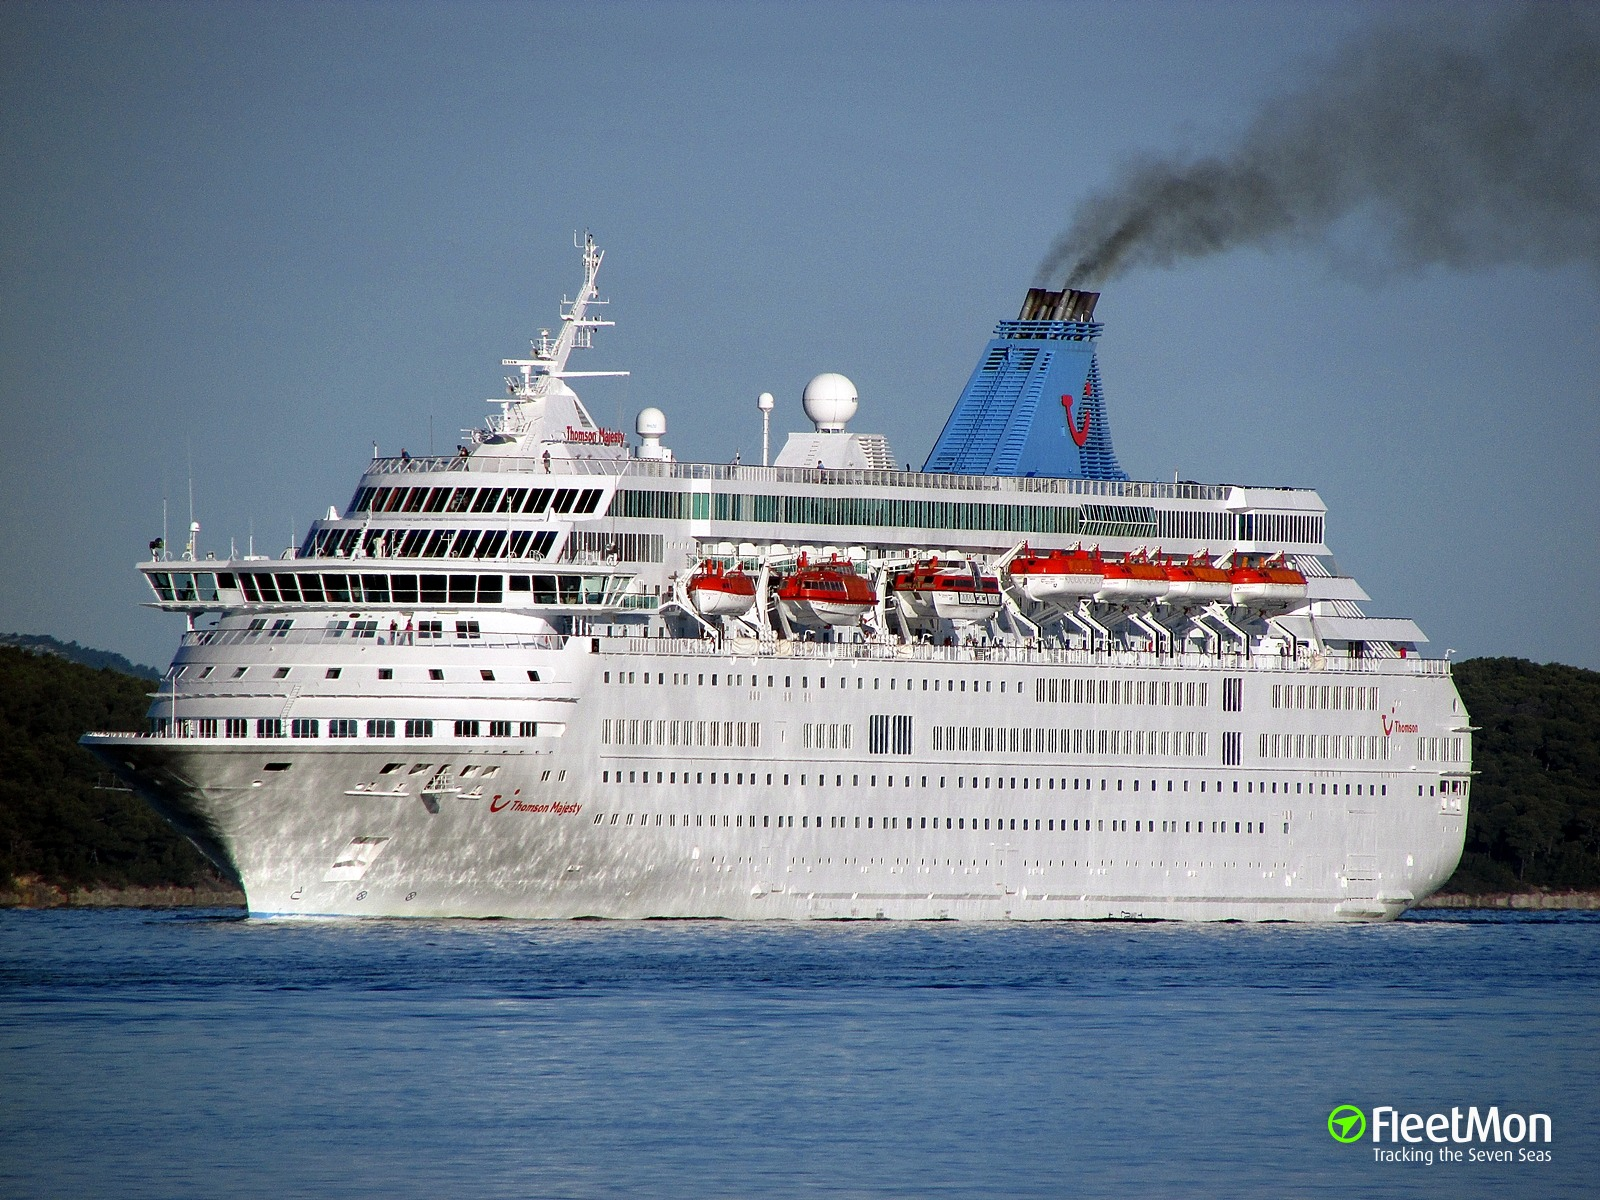 5 crew died in accident on cruise ship during rescue drill, Canary Islands